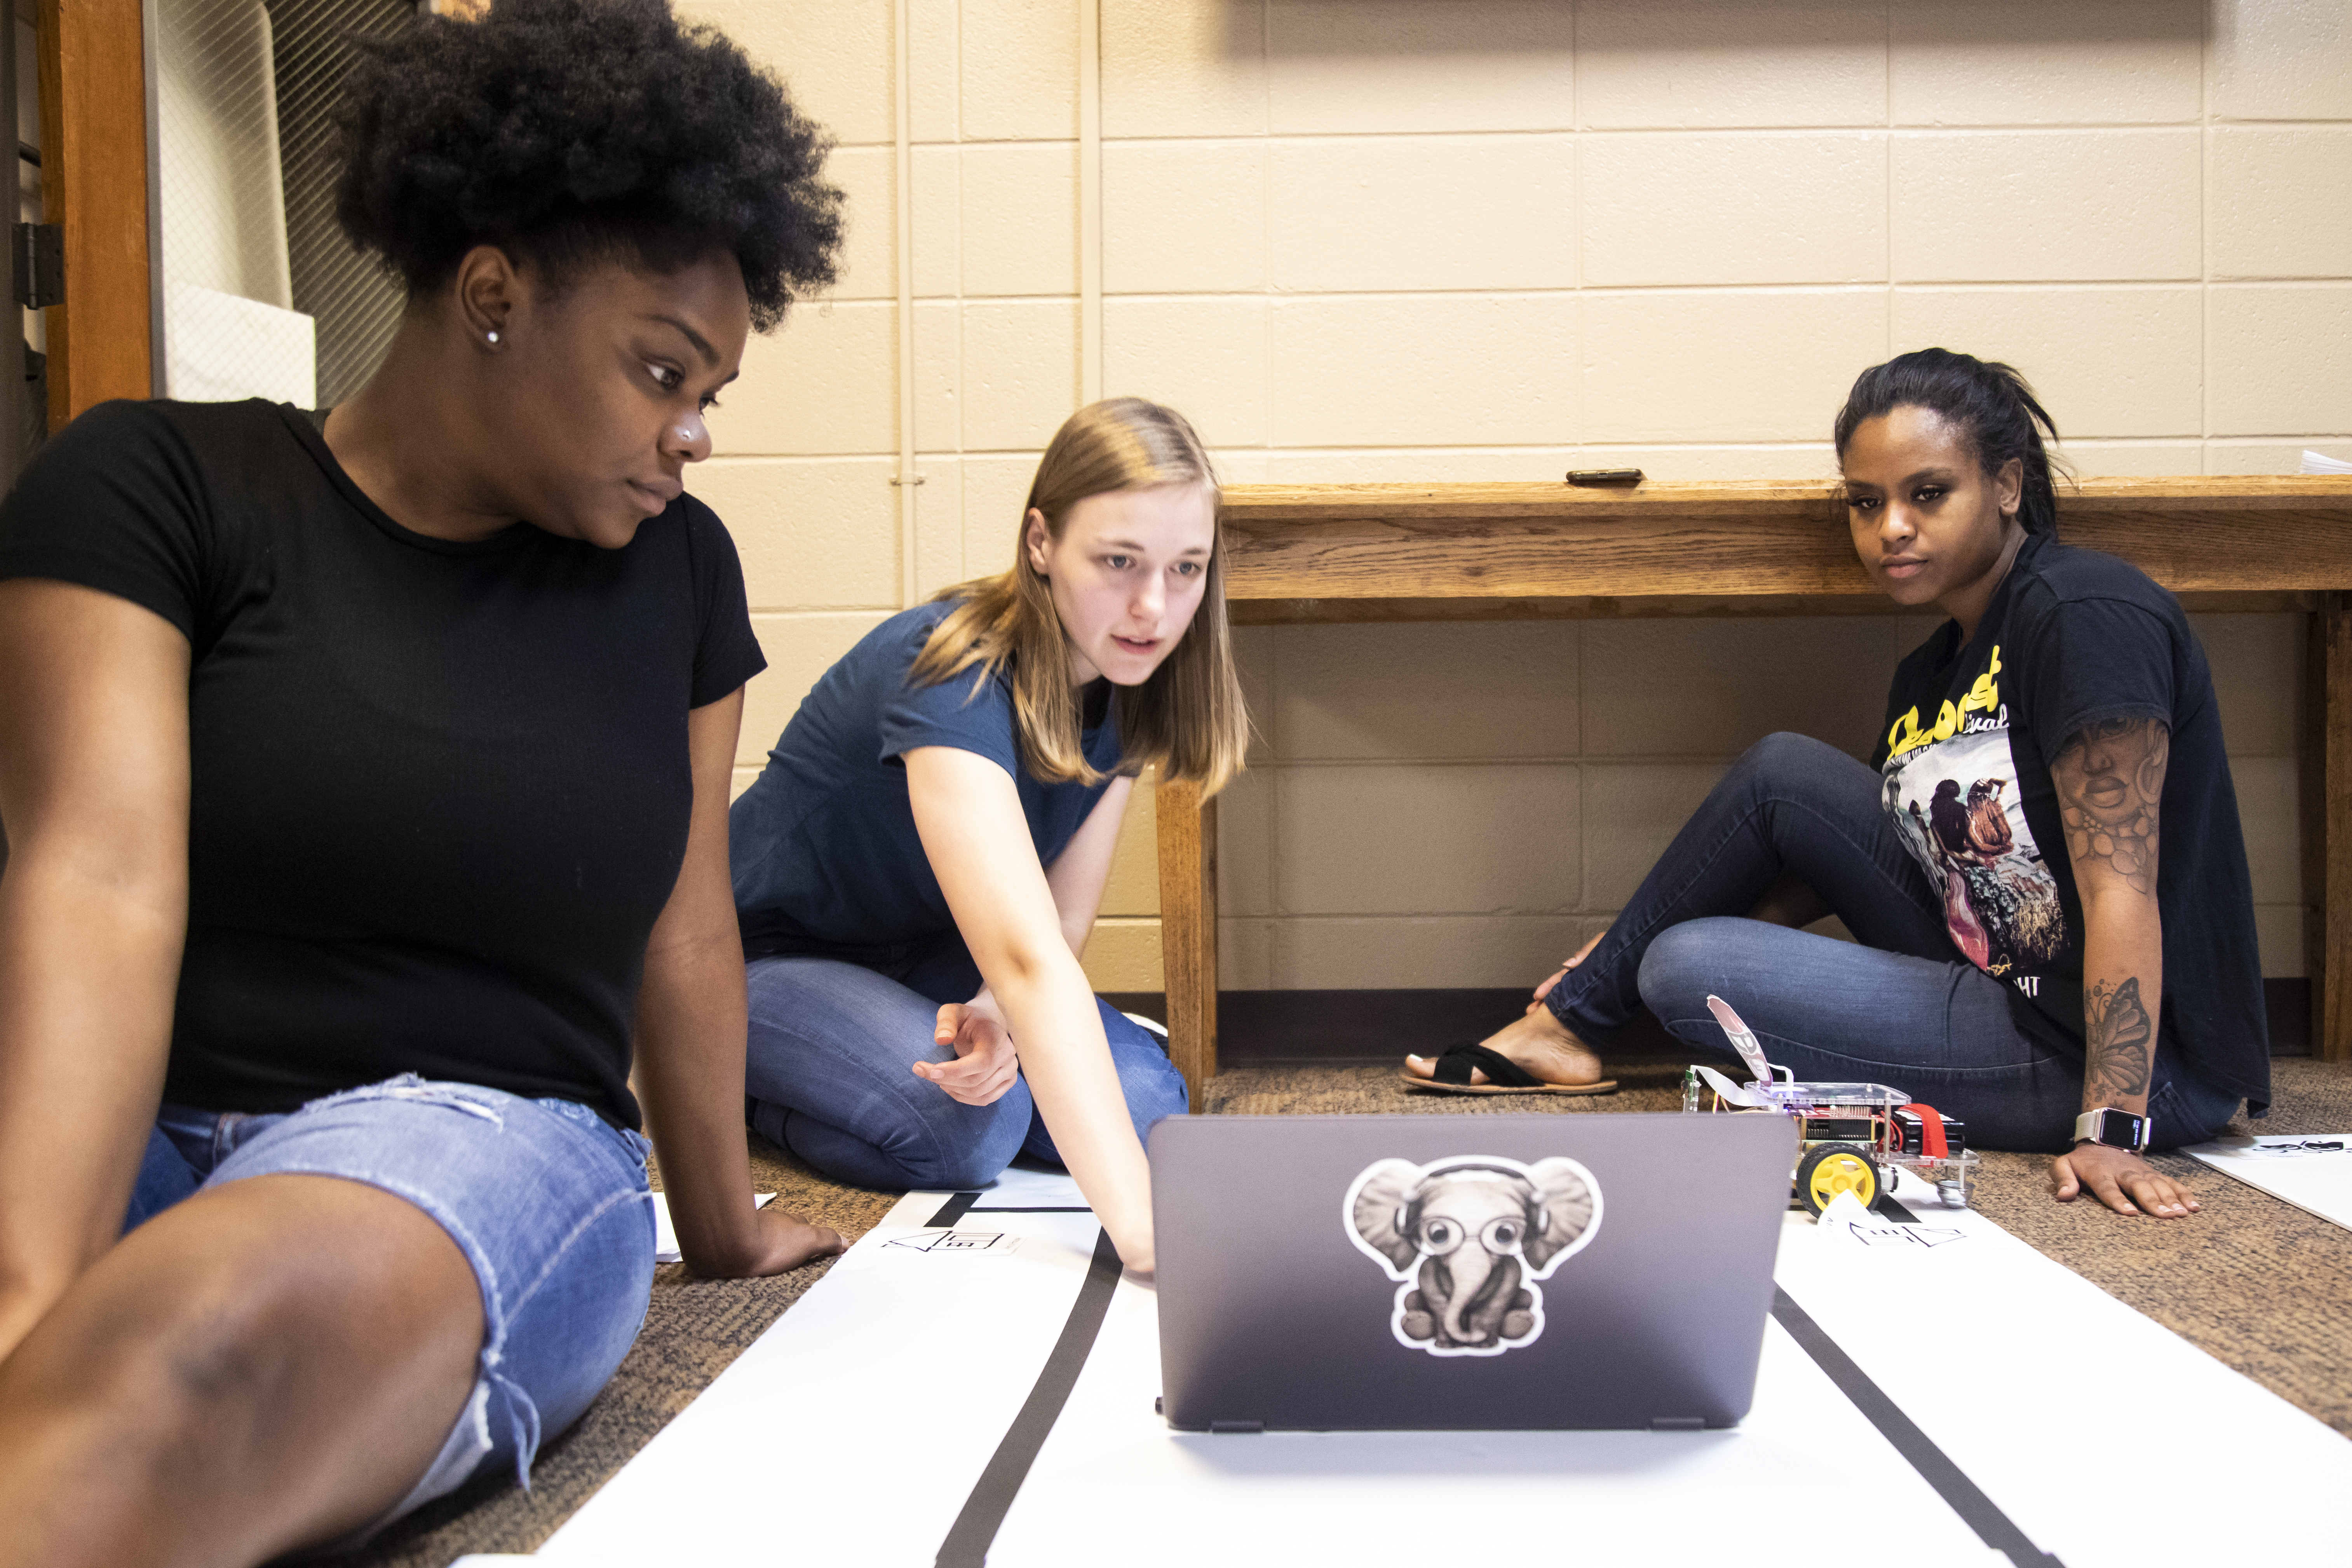 Three female UWG students work on a laptop